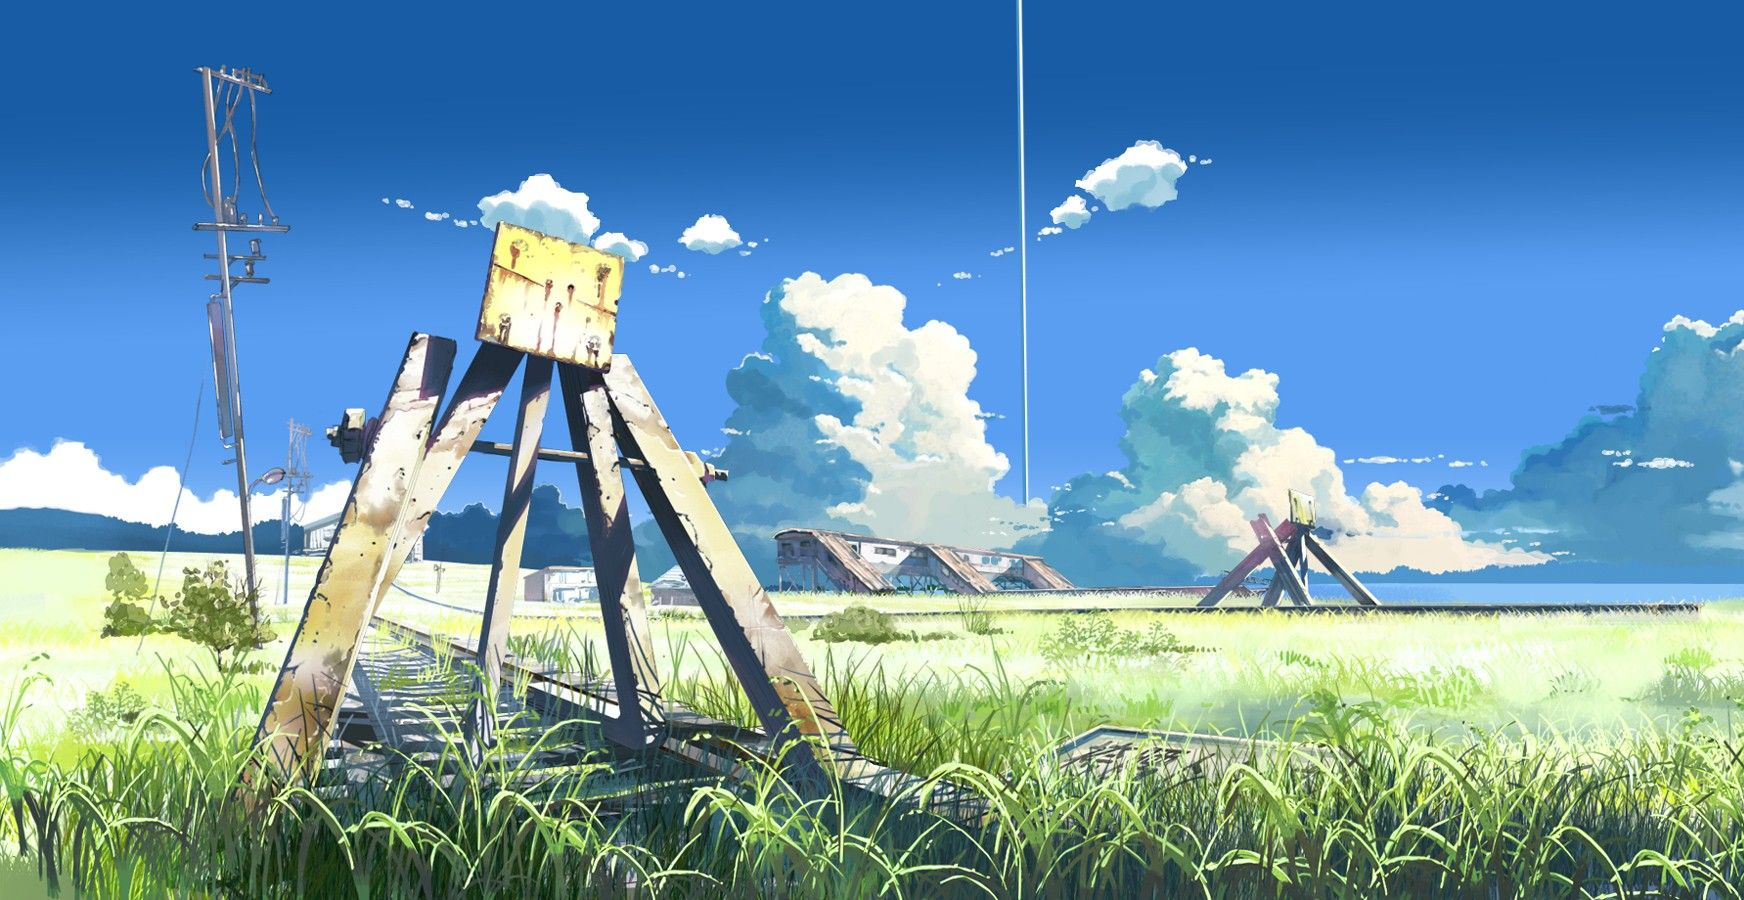 The Place Promised In Our Early Days By Makoto Shinkai Anime Scenery Anime Scenery Wallpaper Anime Background